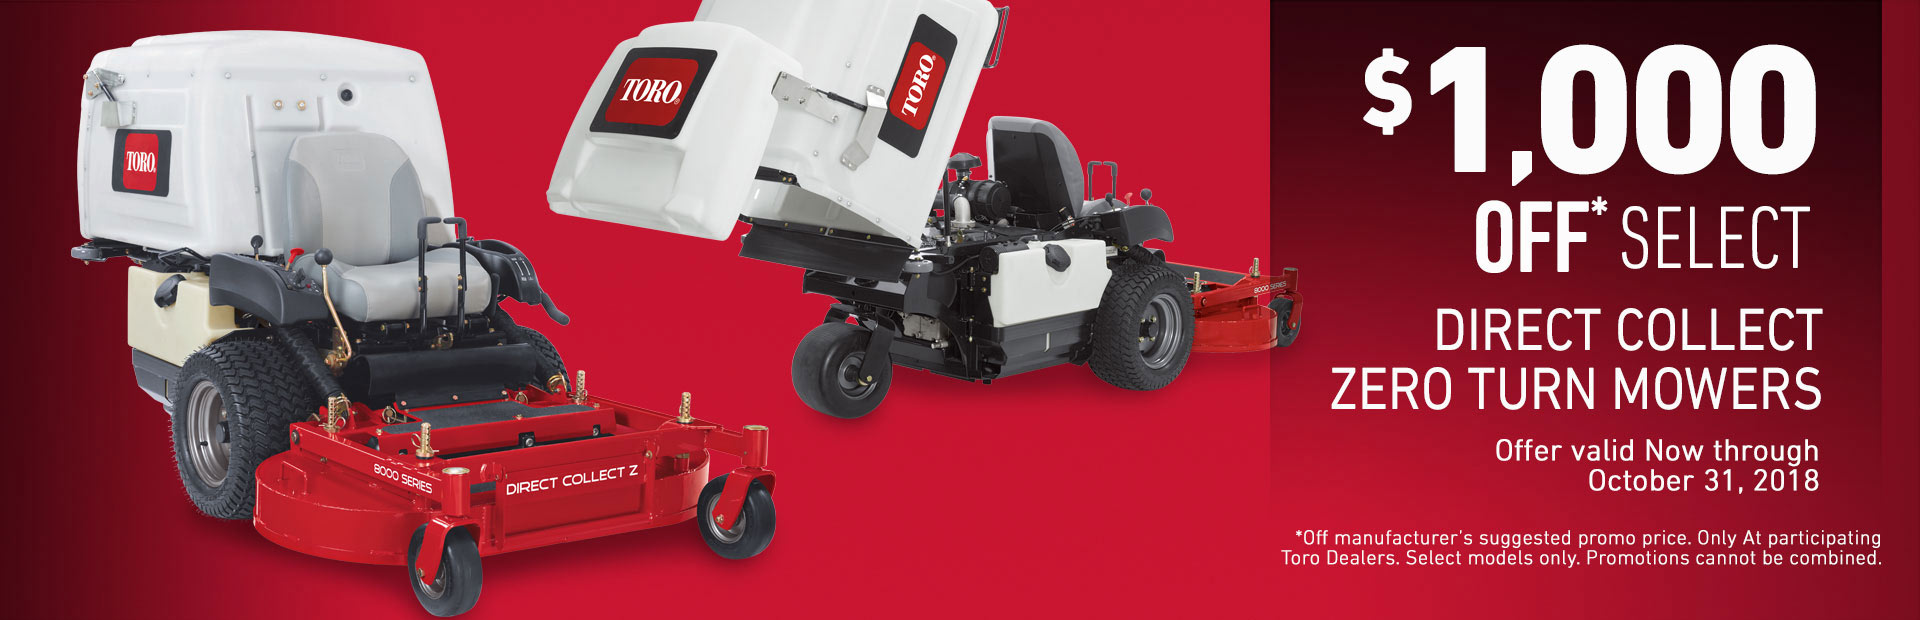 Toro: $1000 USD Off 8000 Series Direct Collect Mowers